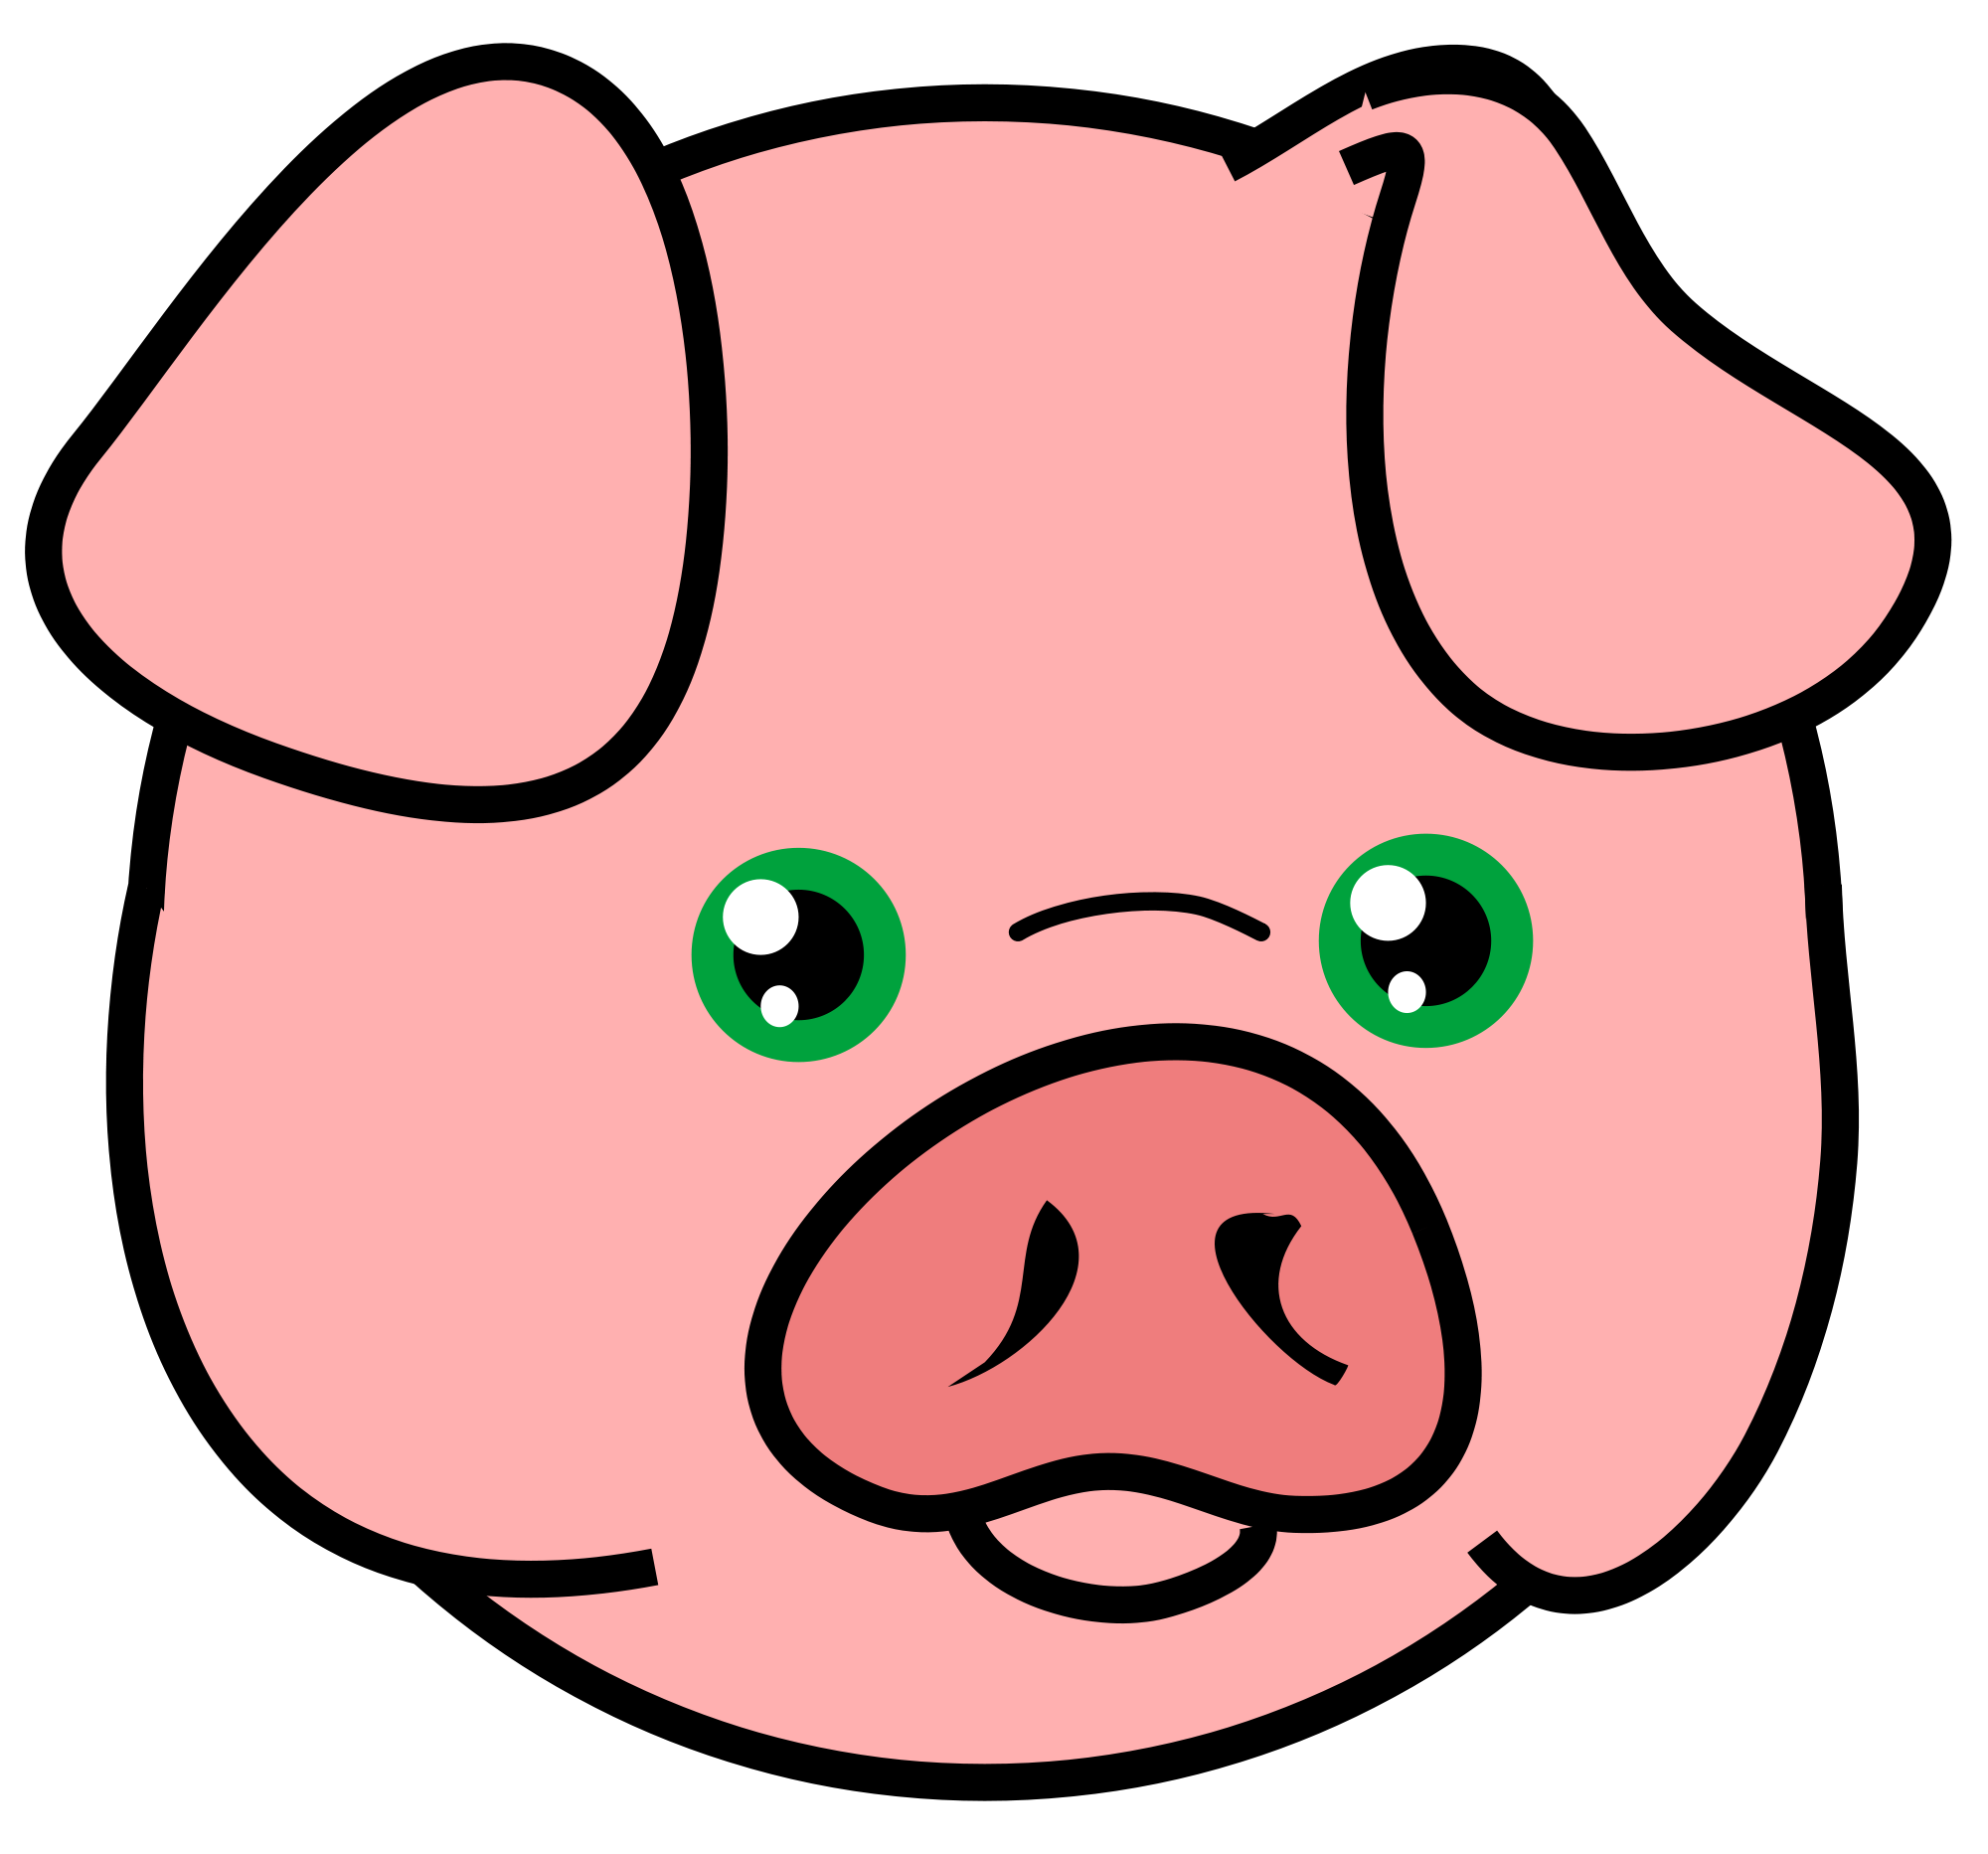 Pork drawing clip art. File pig icon svg